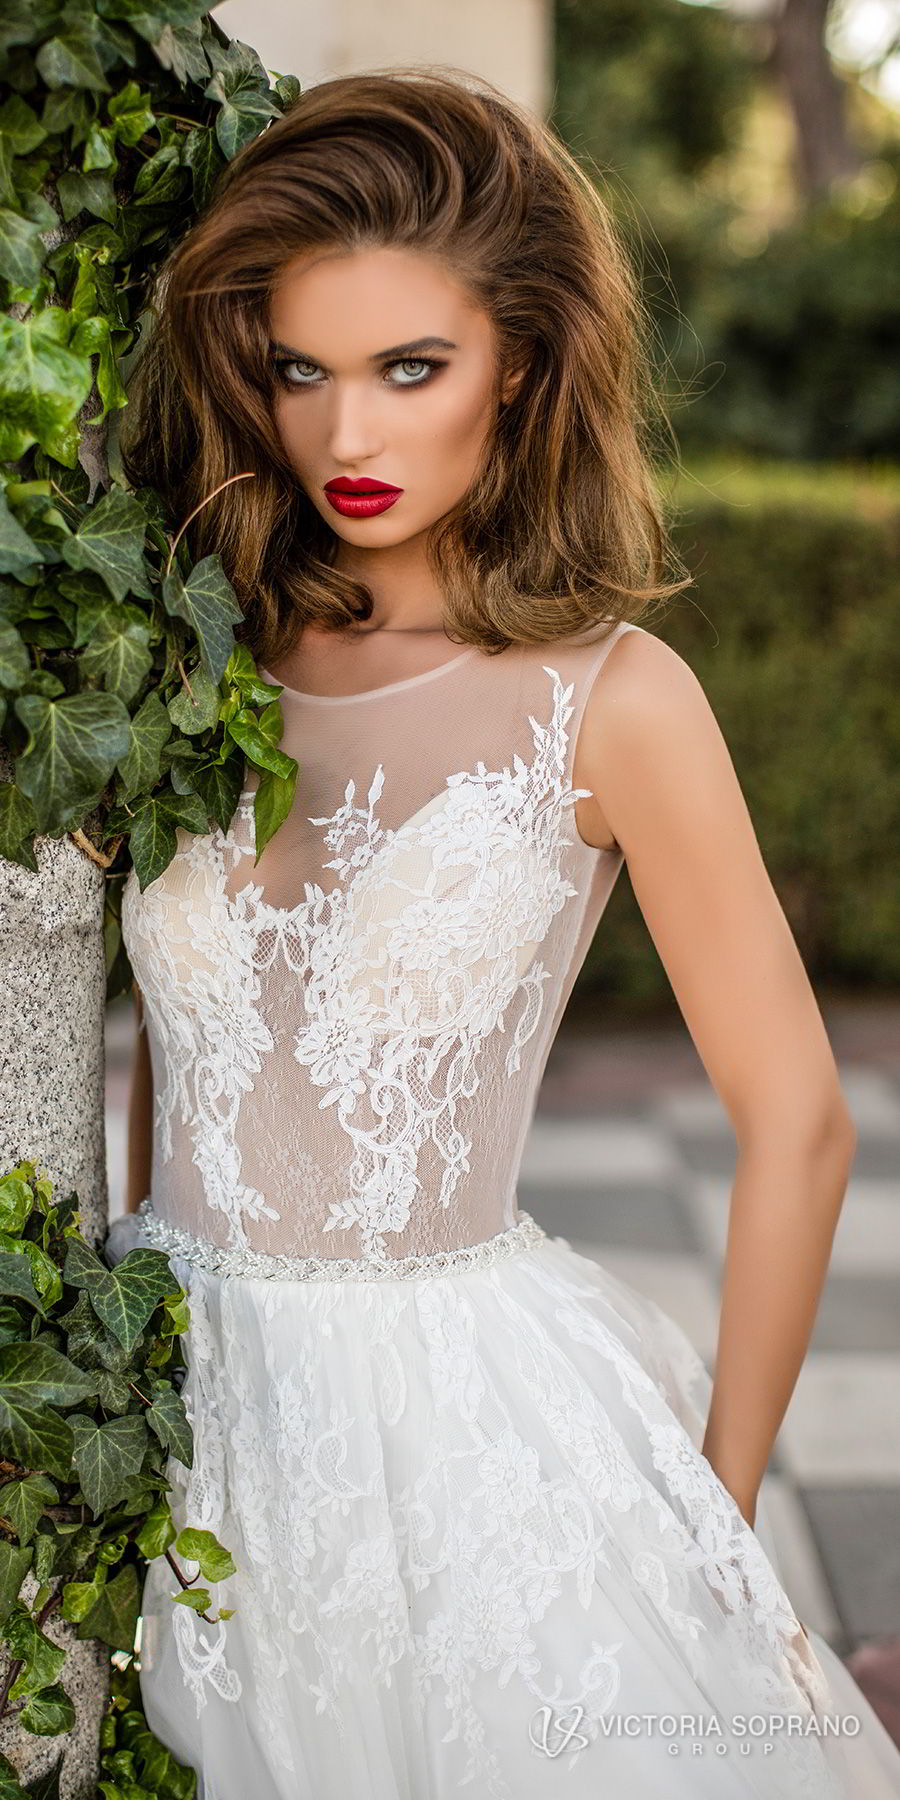 victoria soprano 2018 bridal sleeveless illusion jewel sweetheart neckline heavily embellished bodice romantic a line wedding dress sheer lace back chapel train (lilou) zv